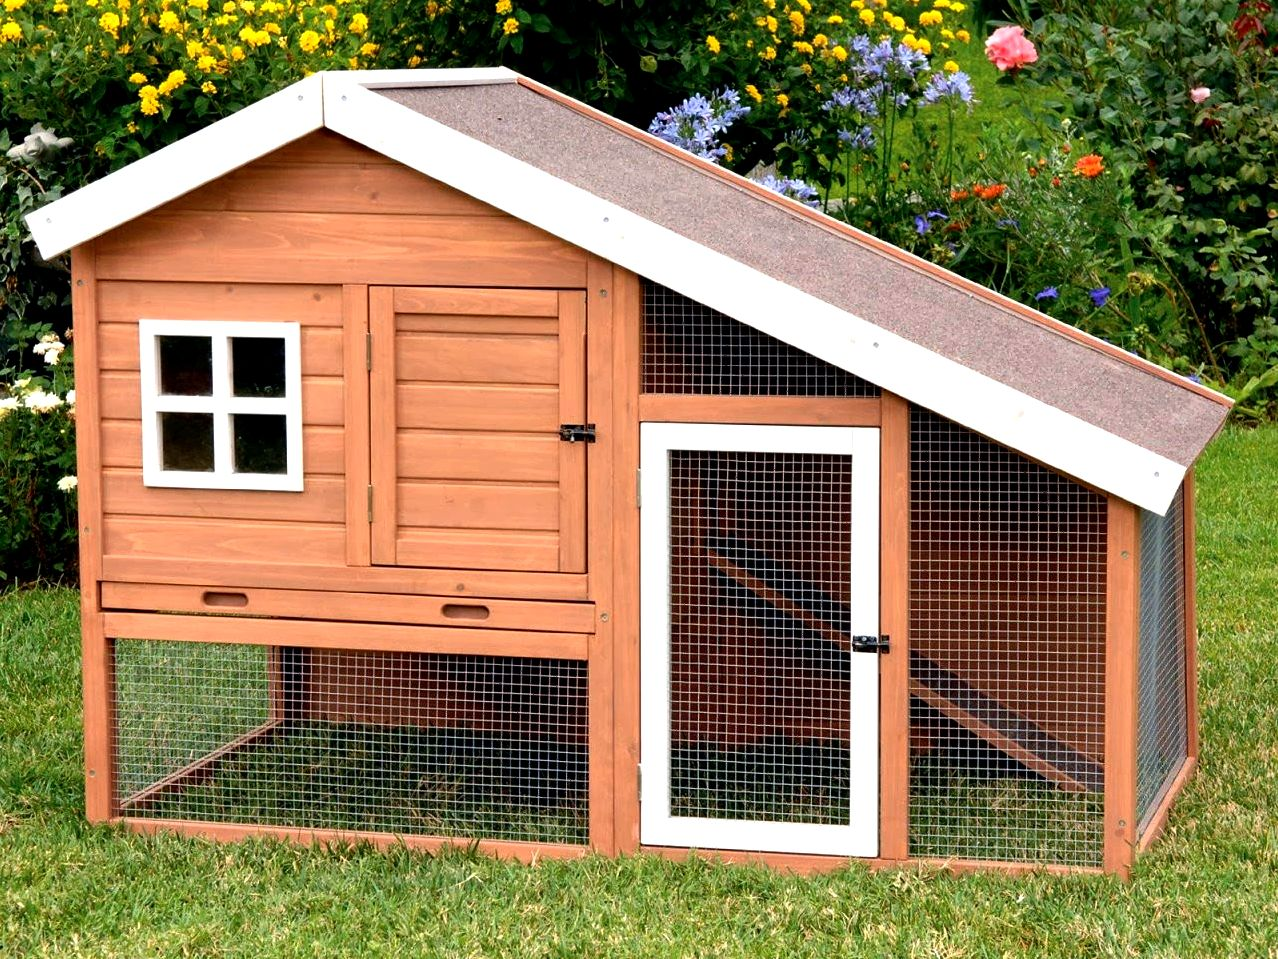 Chicken house plans Gable Chicken House Plans